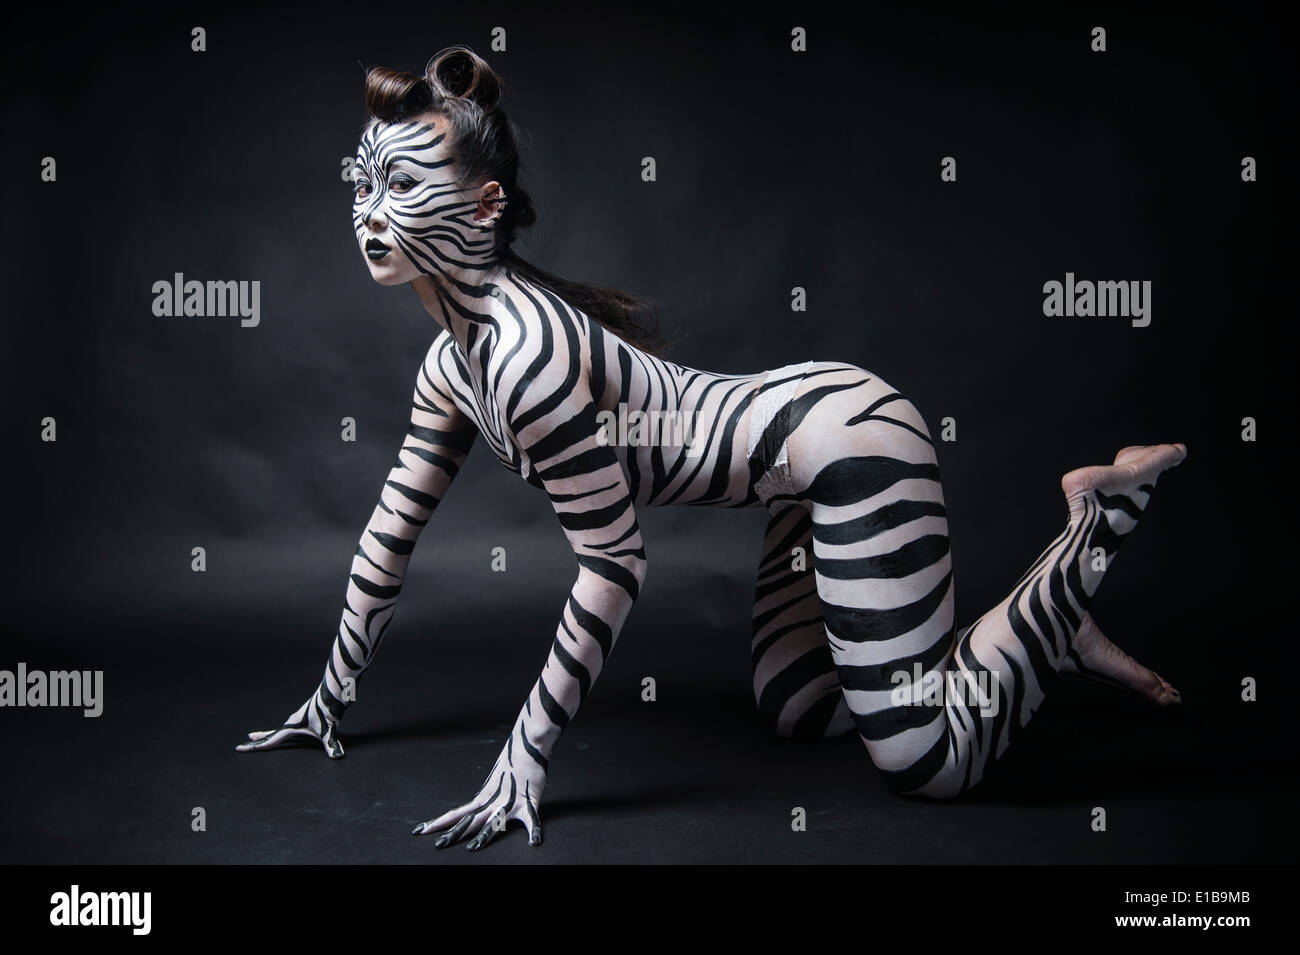 A woman with her body painted in black and white zebra stripes on her hands and knees like an animal